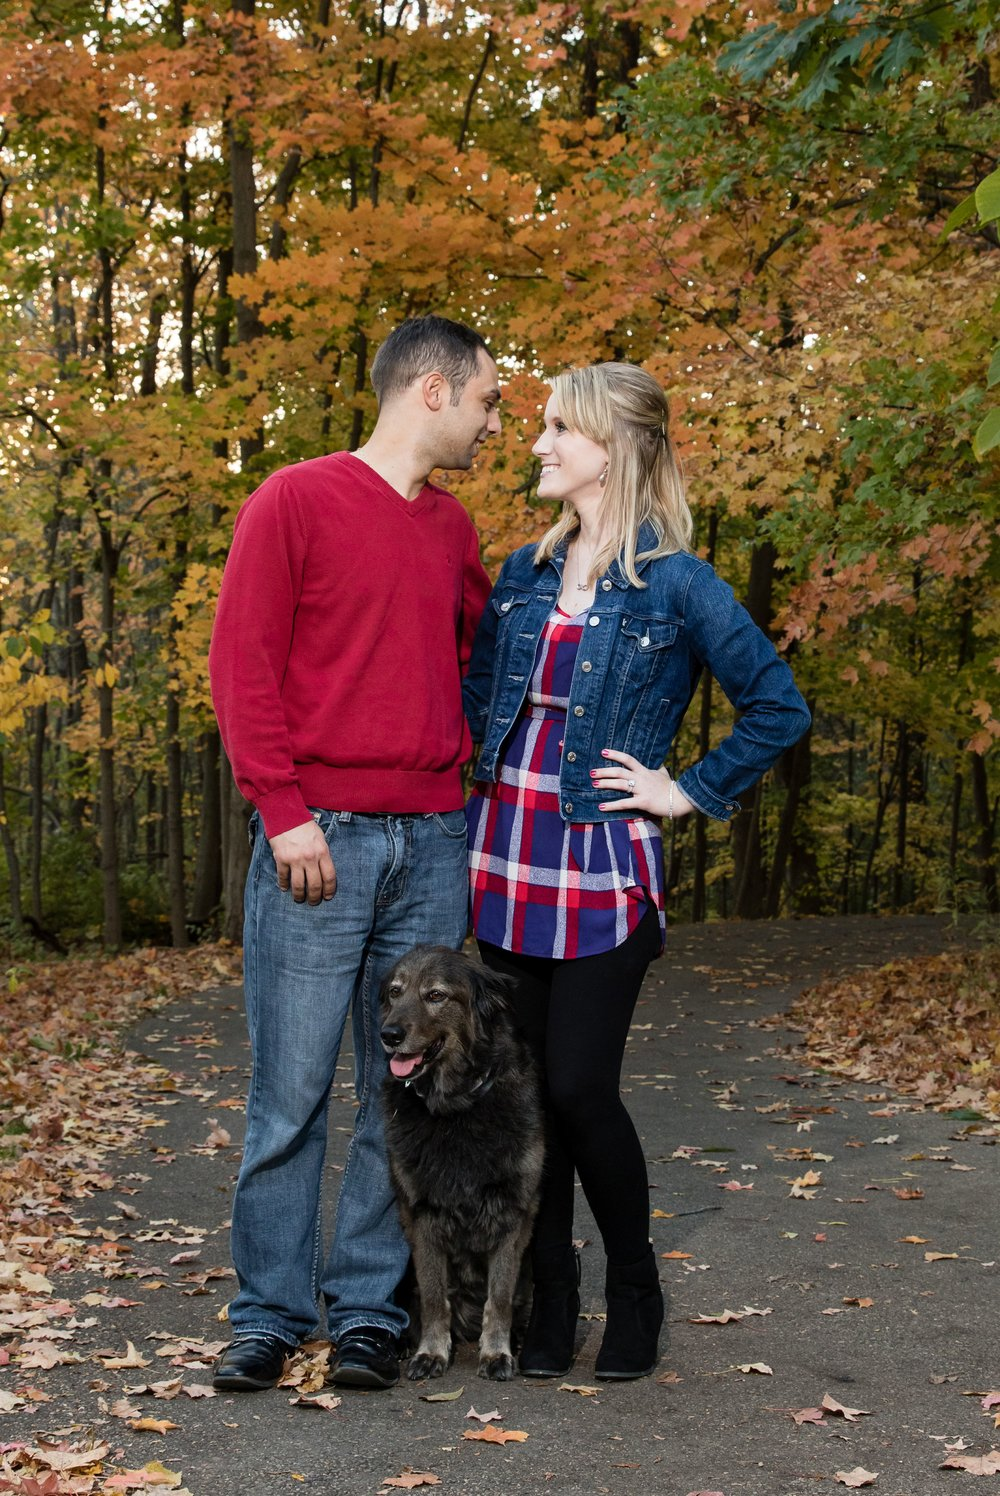 westerville-ohio-fall-outdoor-engagement-session-gahanna-wedding-photography-muschlitz-photography-009.JPG